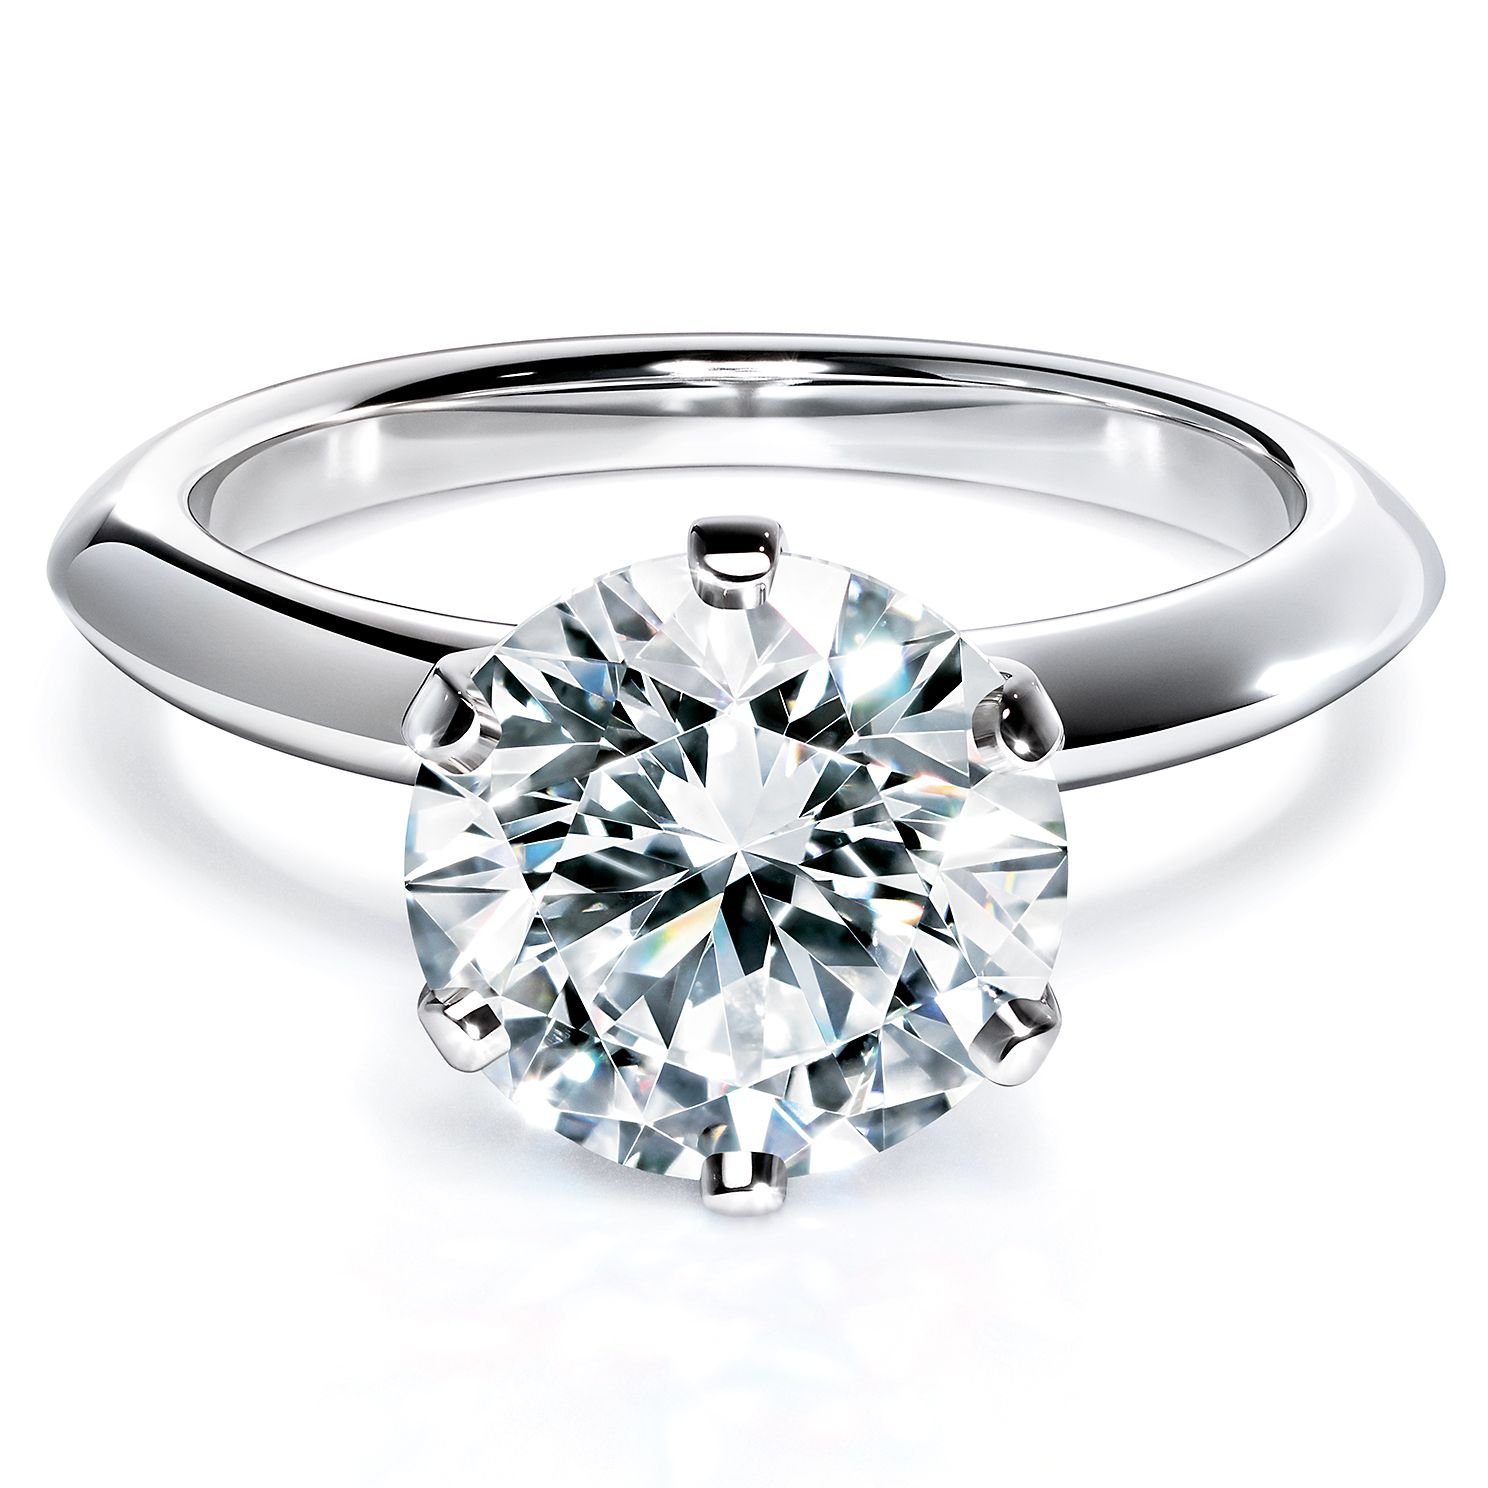 ad0e5401a7aac Engagement Rings | Tiffany & Co.